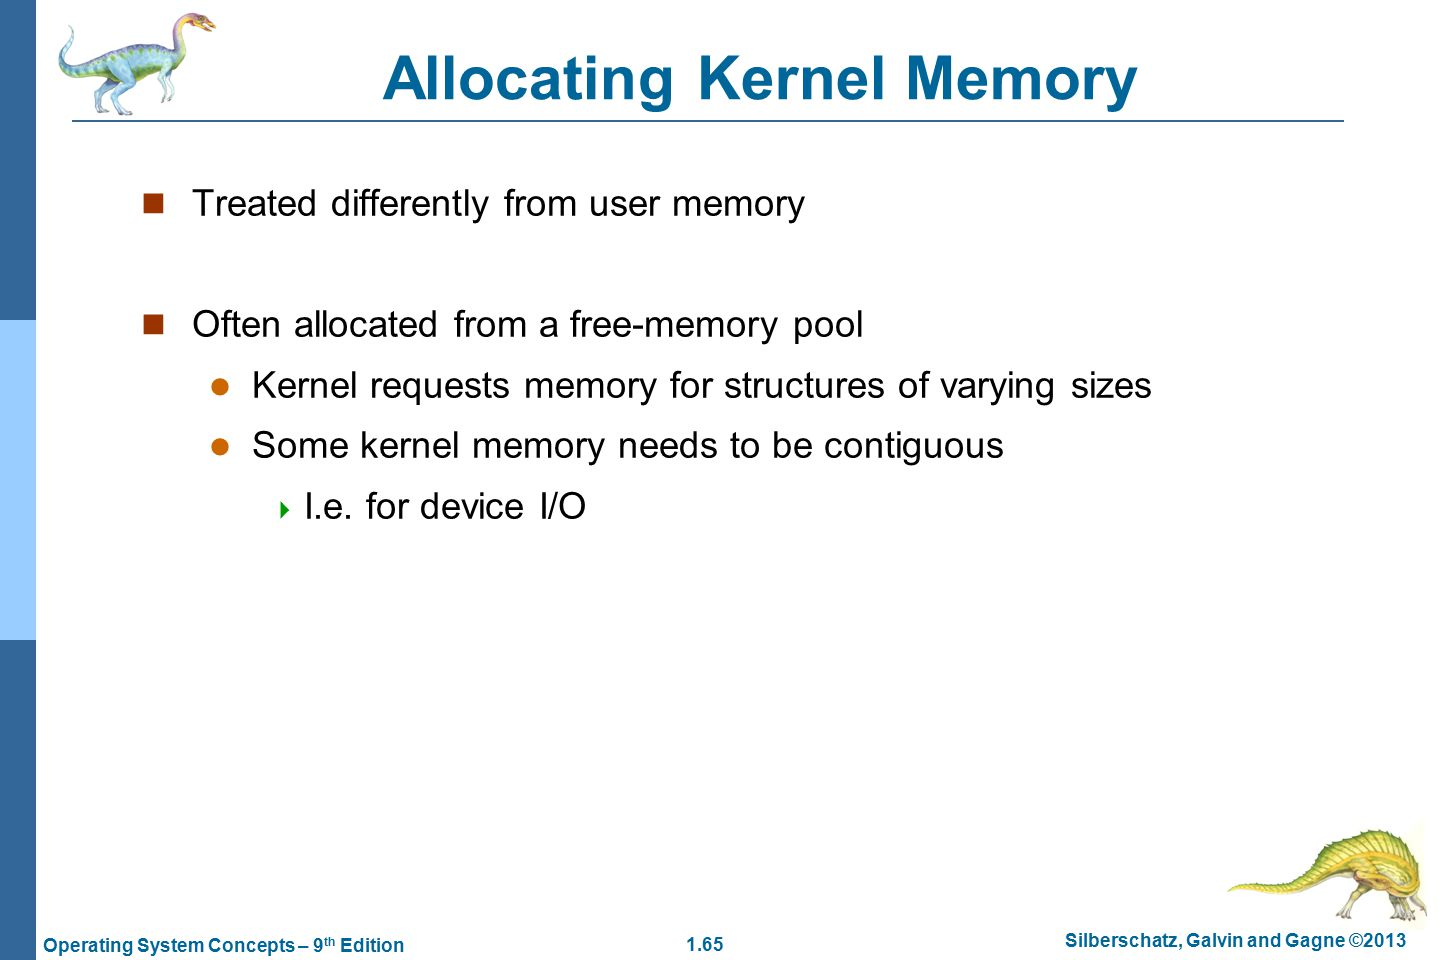 1.65 Silberschatz, Galvin and Gagne ©2013 Operating System Concepts – 9 th Edition Allocating Kernel Memory Treated differently from user memory Often allocated from a free-memory pool Kernel requests memory for structures of varying sizes Some kernel memory needs to be contiguous  I.e.